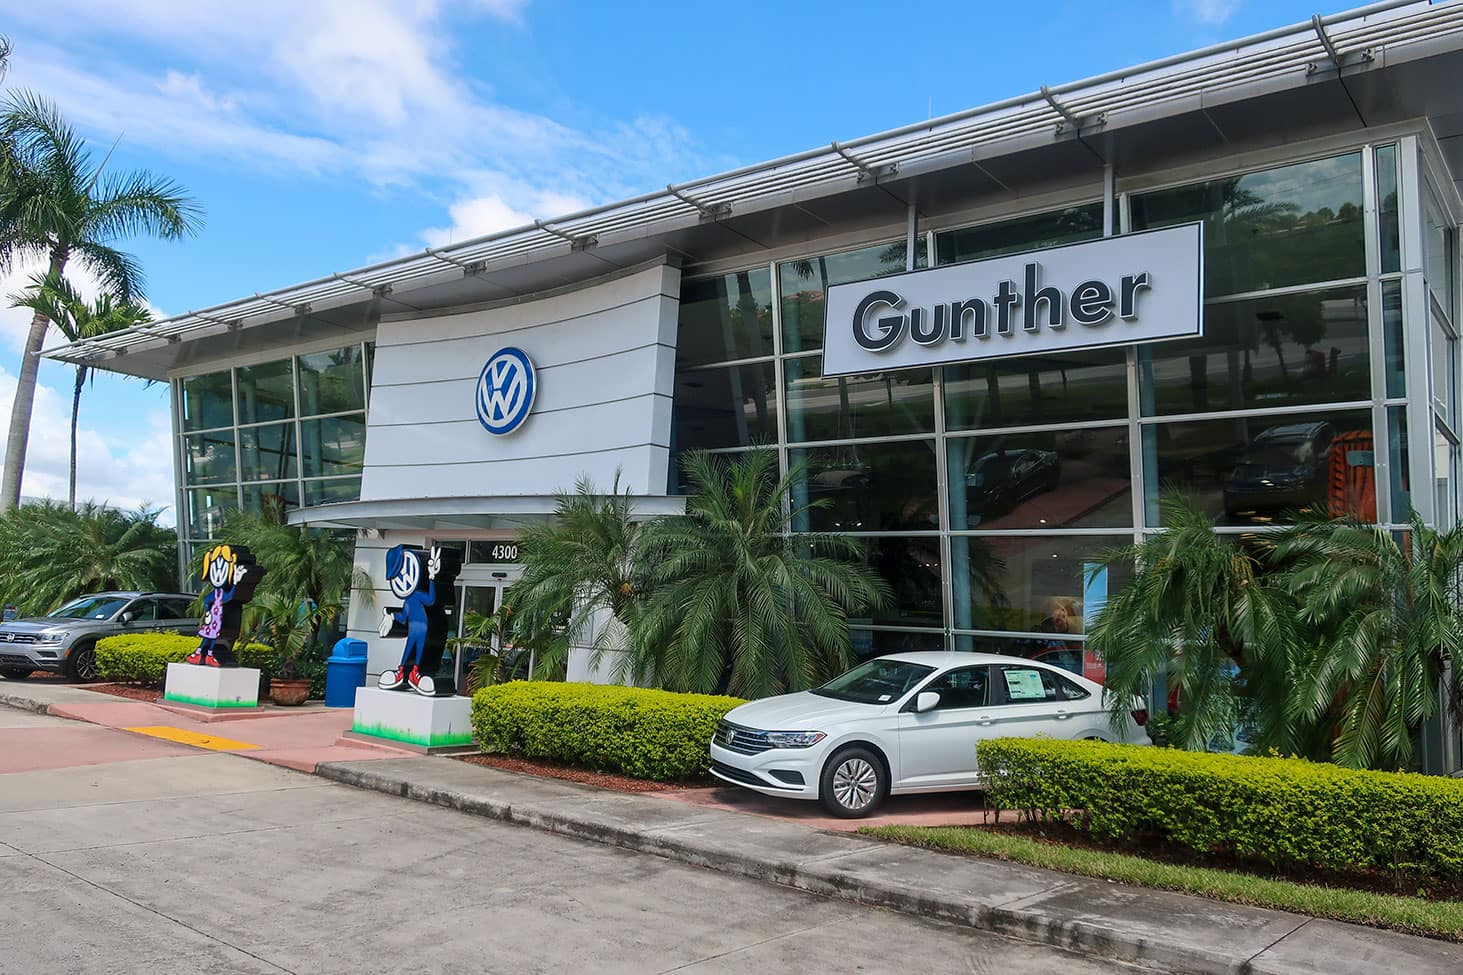 Gunther Volkswagen Coconut Creek exterior.